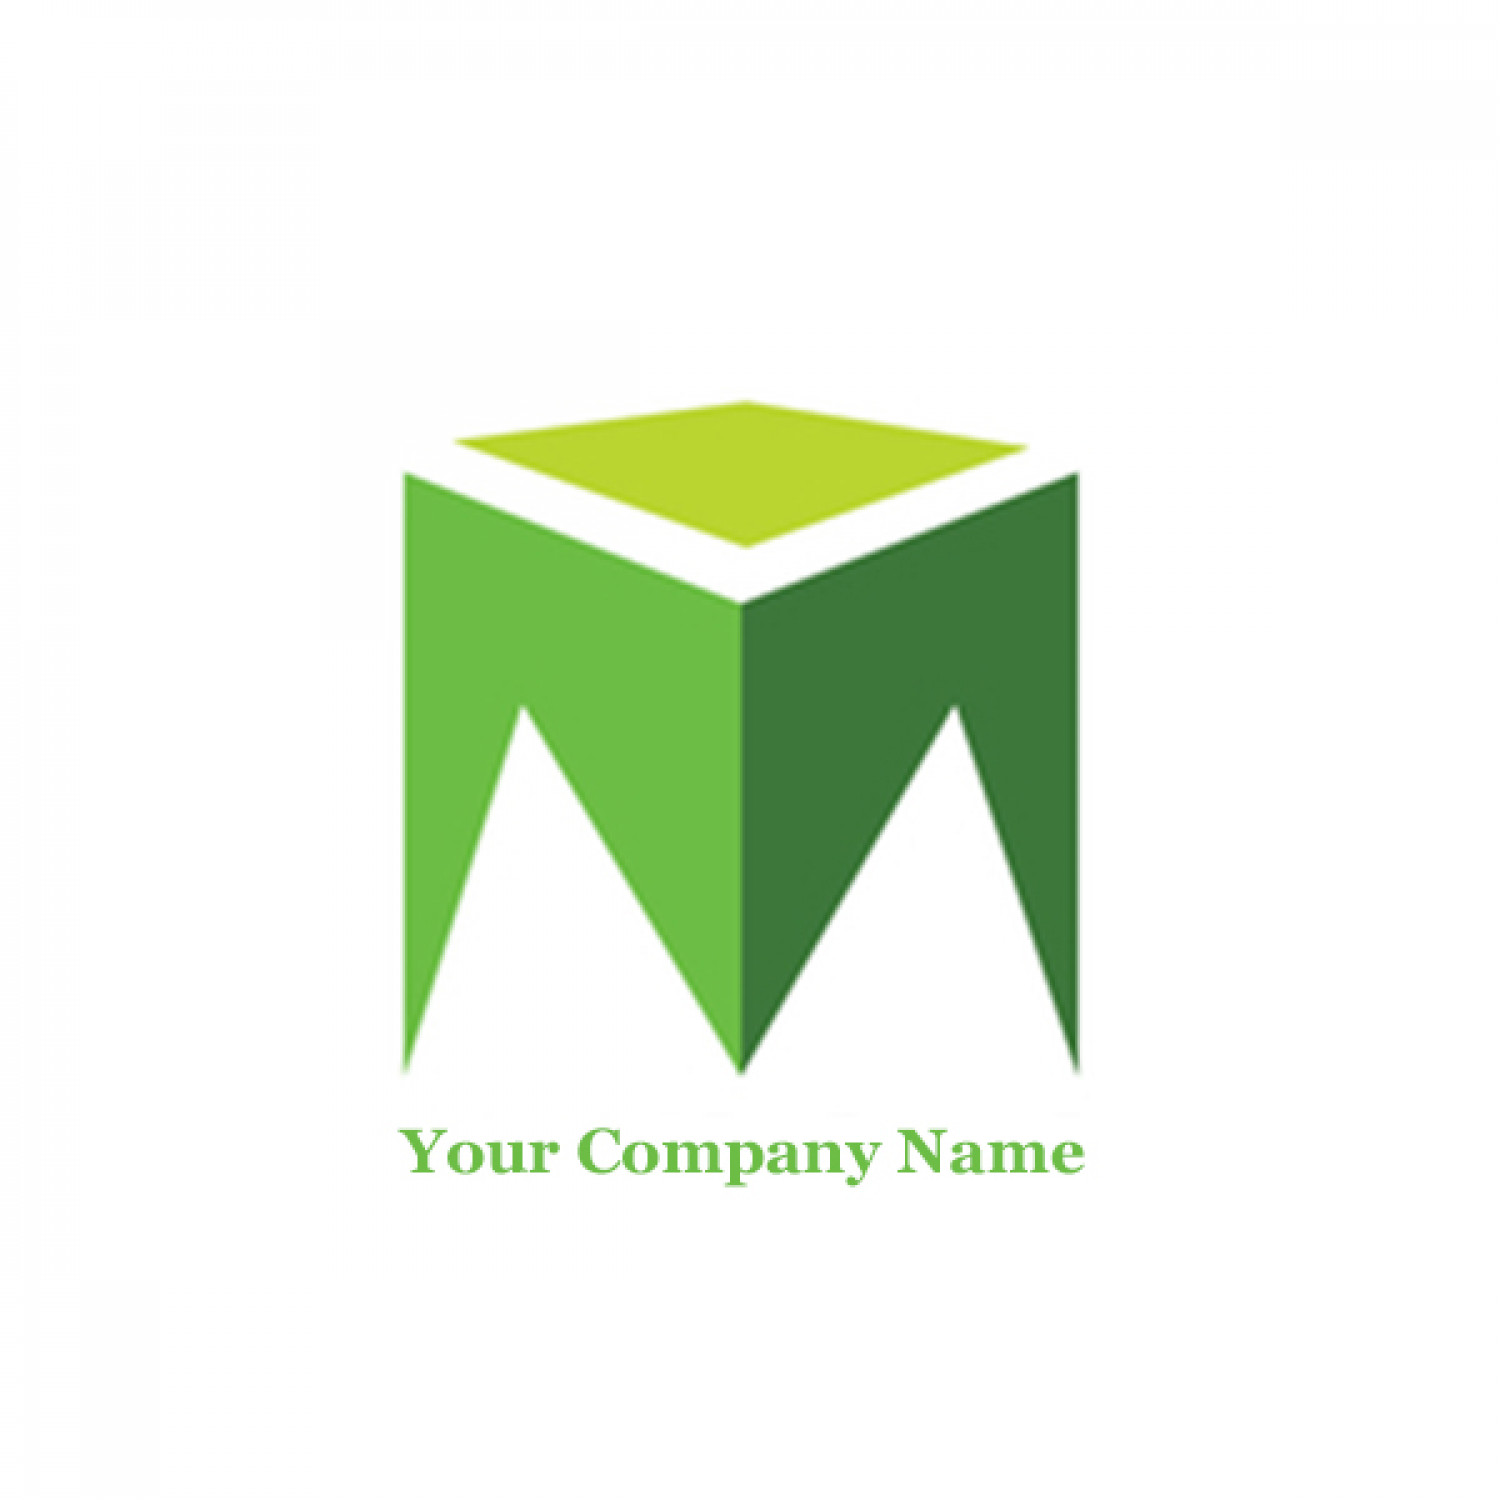 Top Logo Design » Designing Company Logo - Creative Logo Samples ... for Corporate Logo Design Samples  177nar